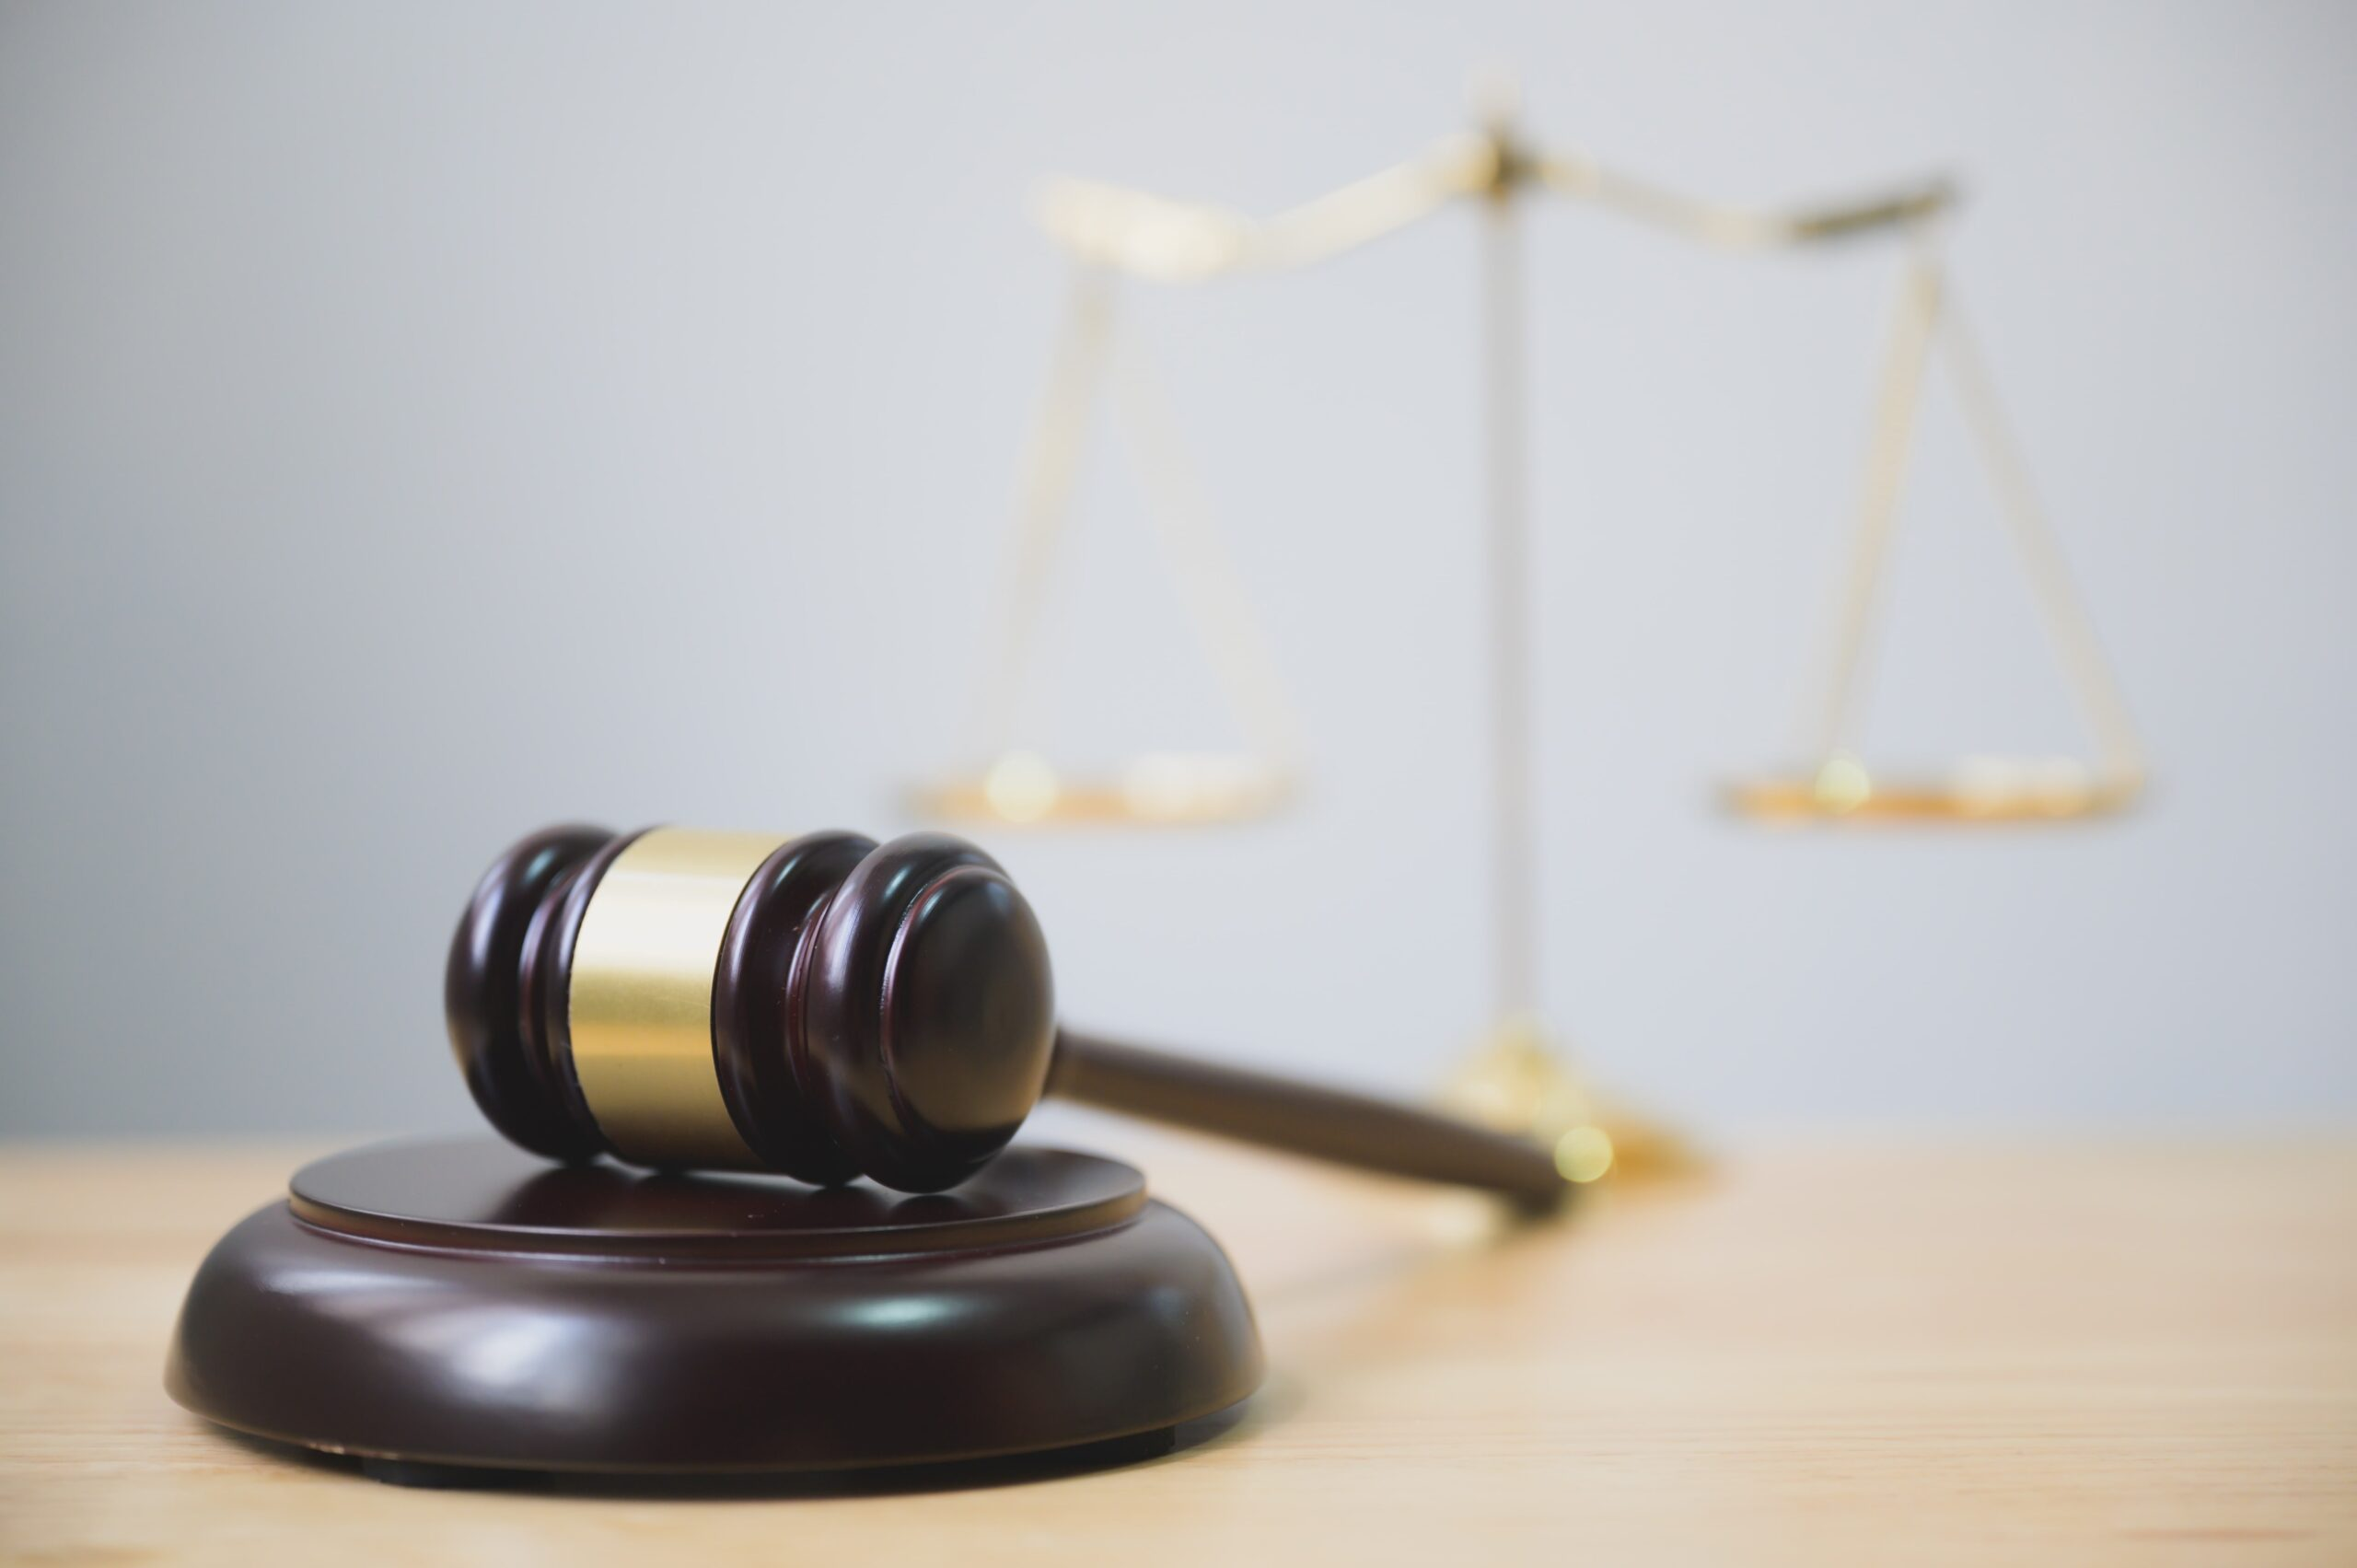 https://doradcy365.pl/wp-content/uploads/2020/11/law-justice-legality-judge-gavel-wooden-table-min-scaled.jpg